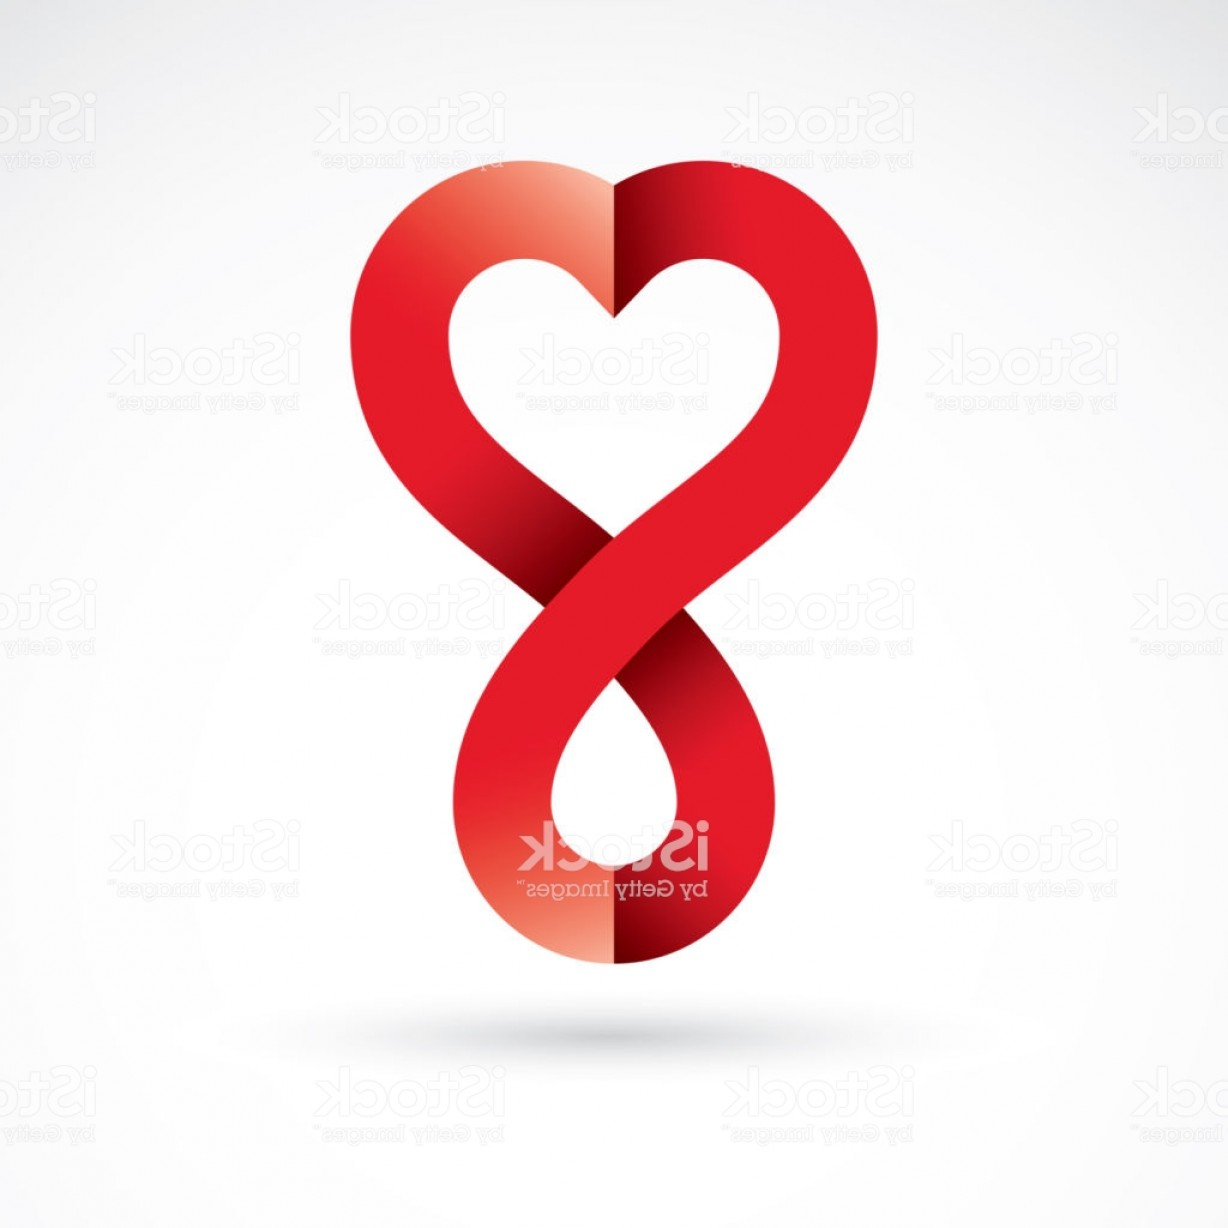 Vector Infinity Symbol Hearts: Vector Illustration Of Heart Shape And Infinity Symbol Hematology Theme Medical Gm